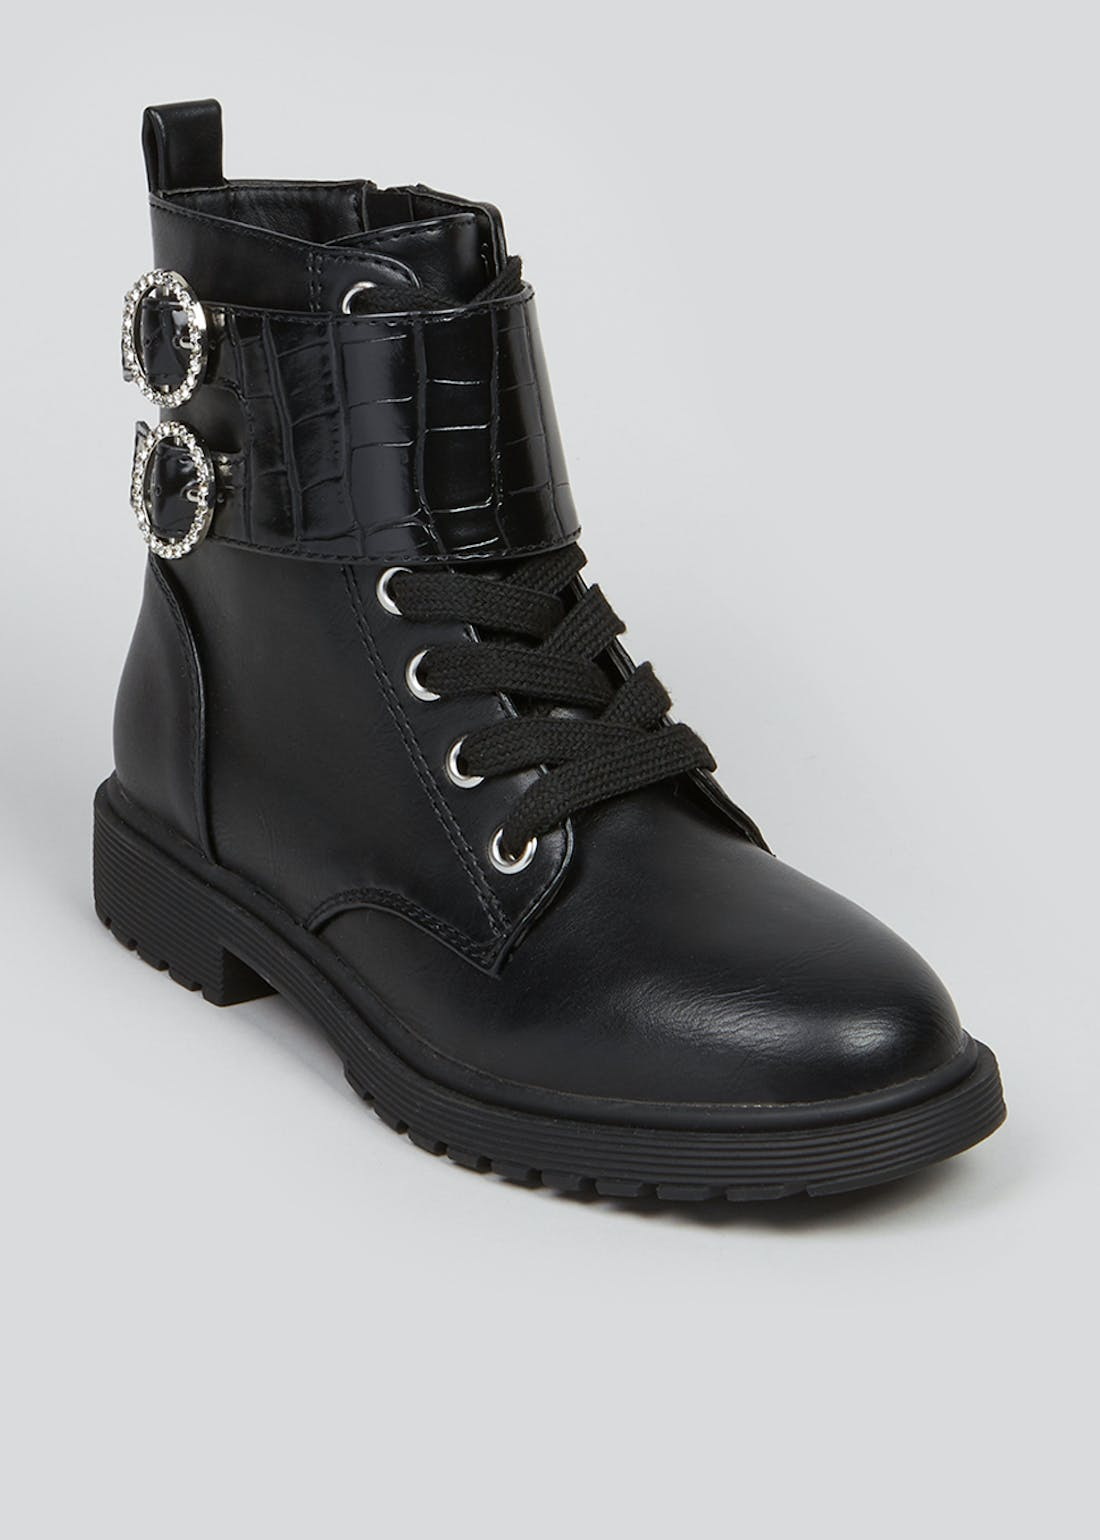 Girls Black Diamante Buckle Ankle Boots (Younger 10-Older 5)